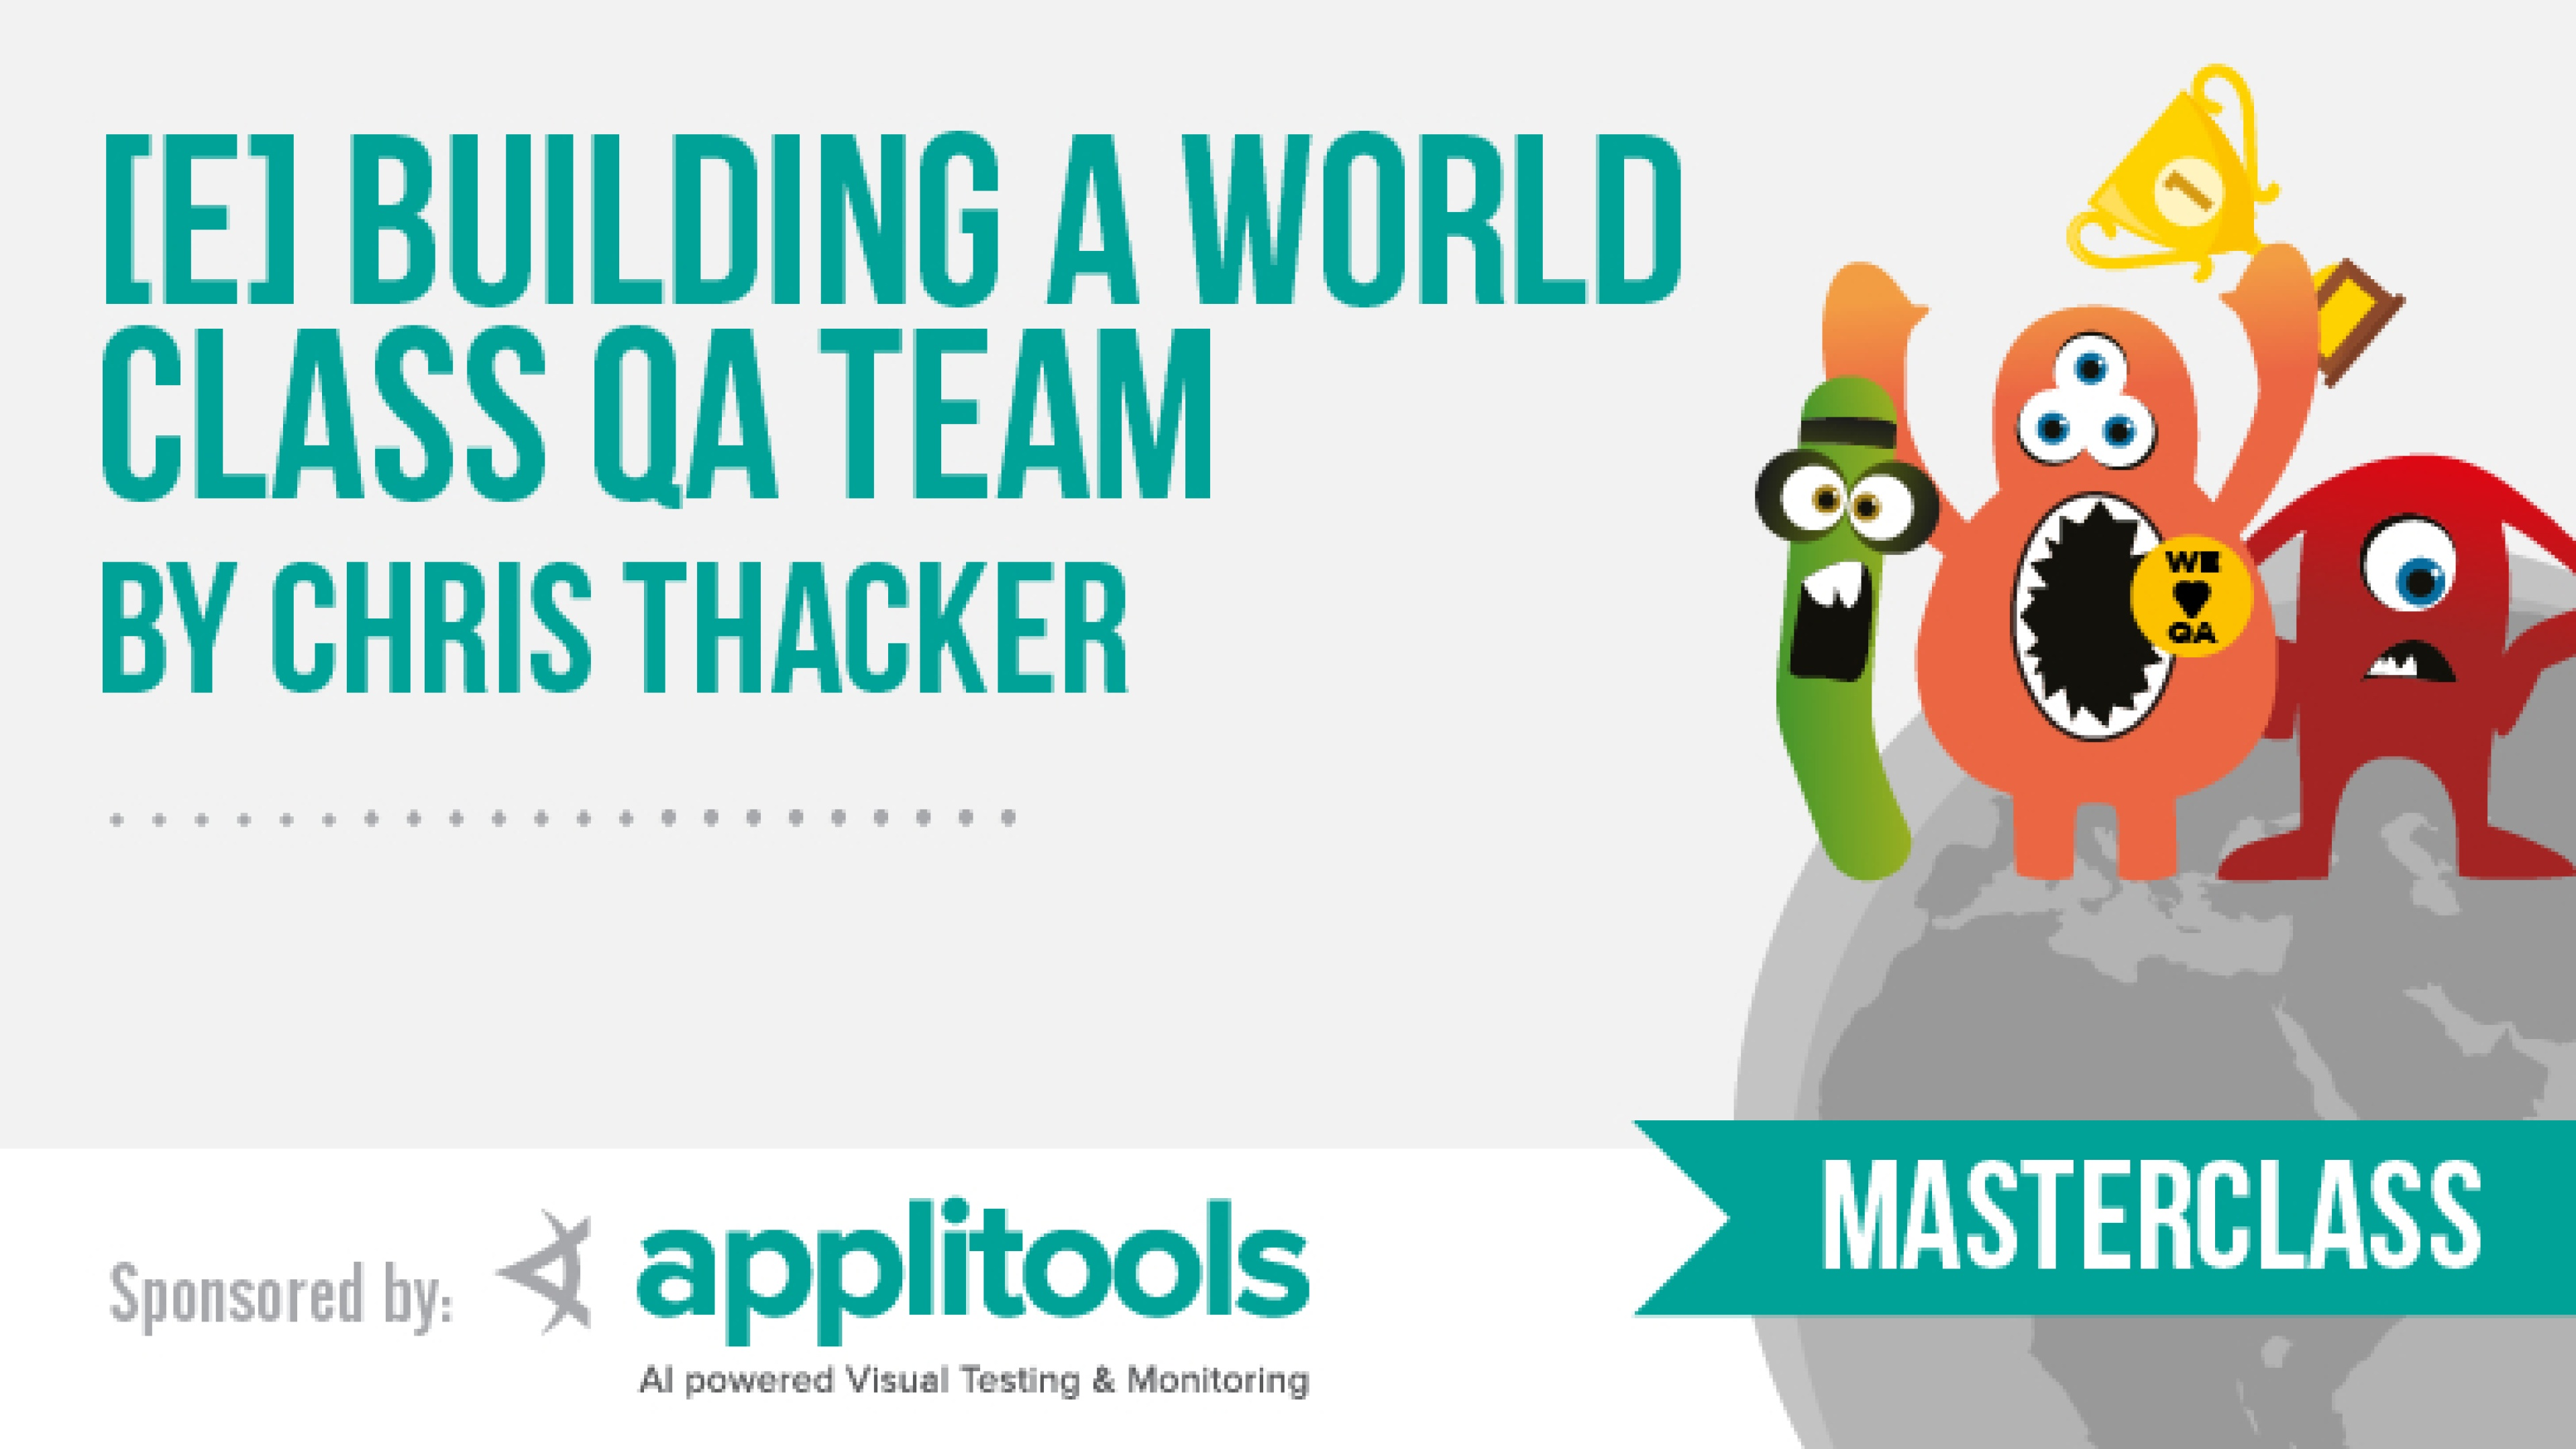 Masterclass: [E] Building a World Class QA team with Chris Thacker